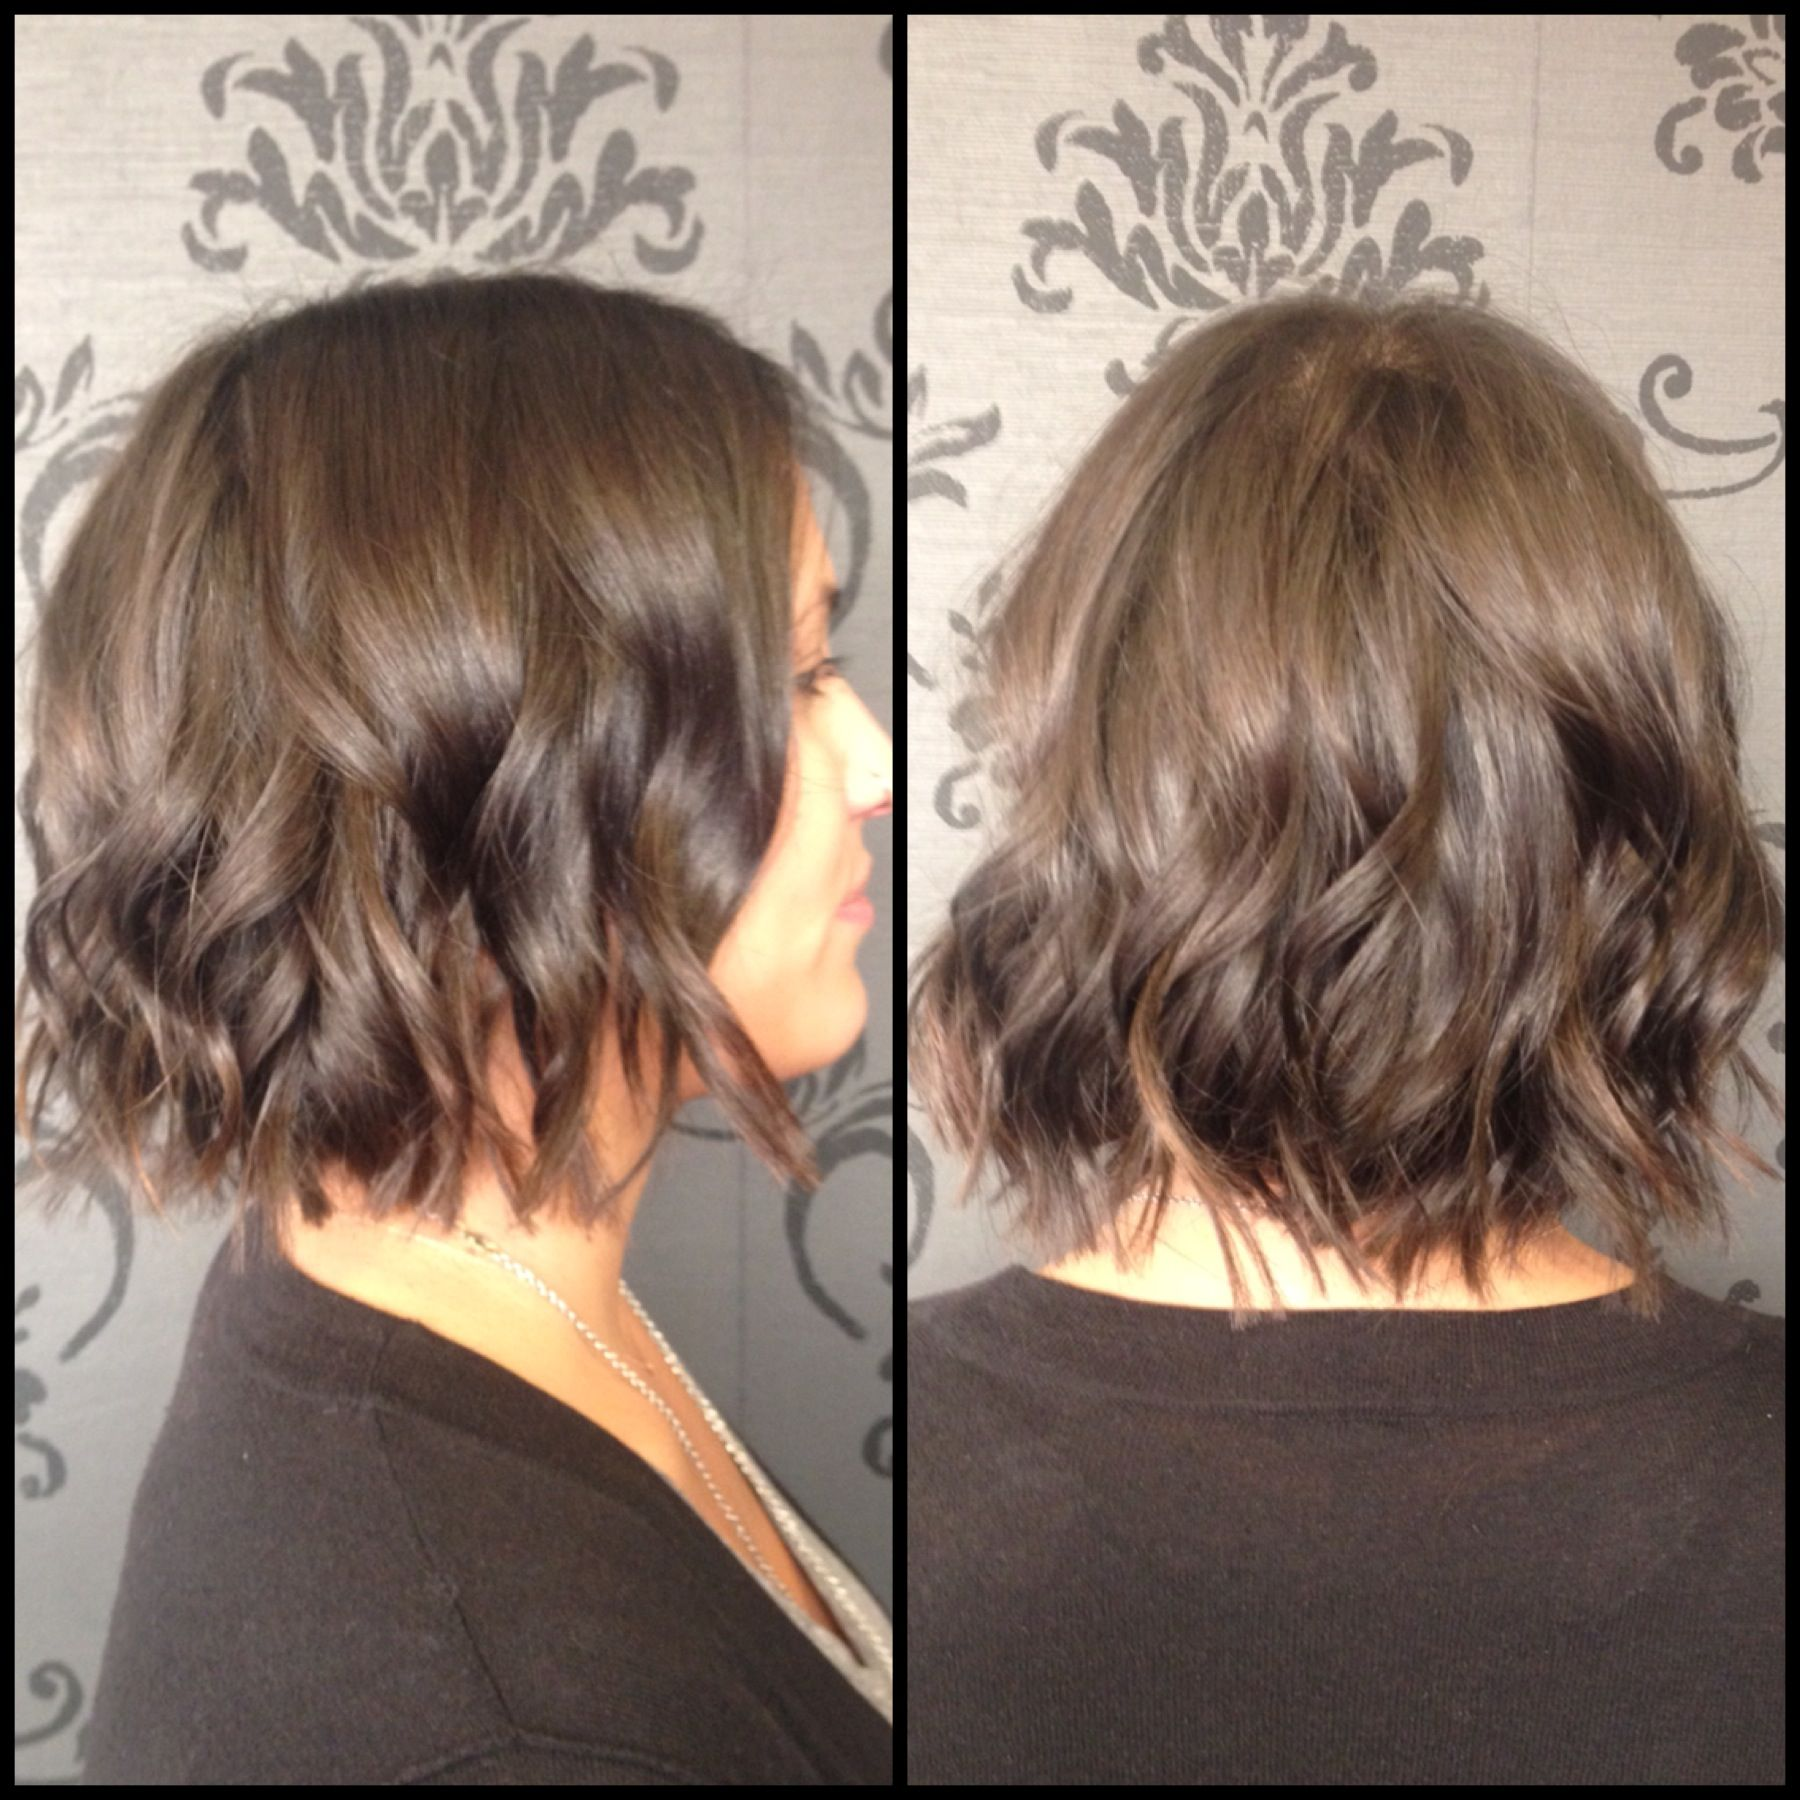 Short Hair Textured Bob Bob Waves Flat Iron Waves Brunette Hair Styles Fresh Hair Bob Braids Hairstyles